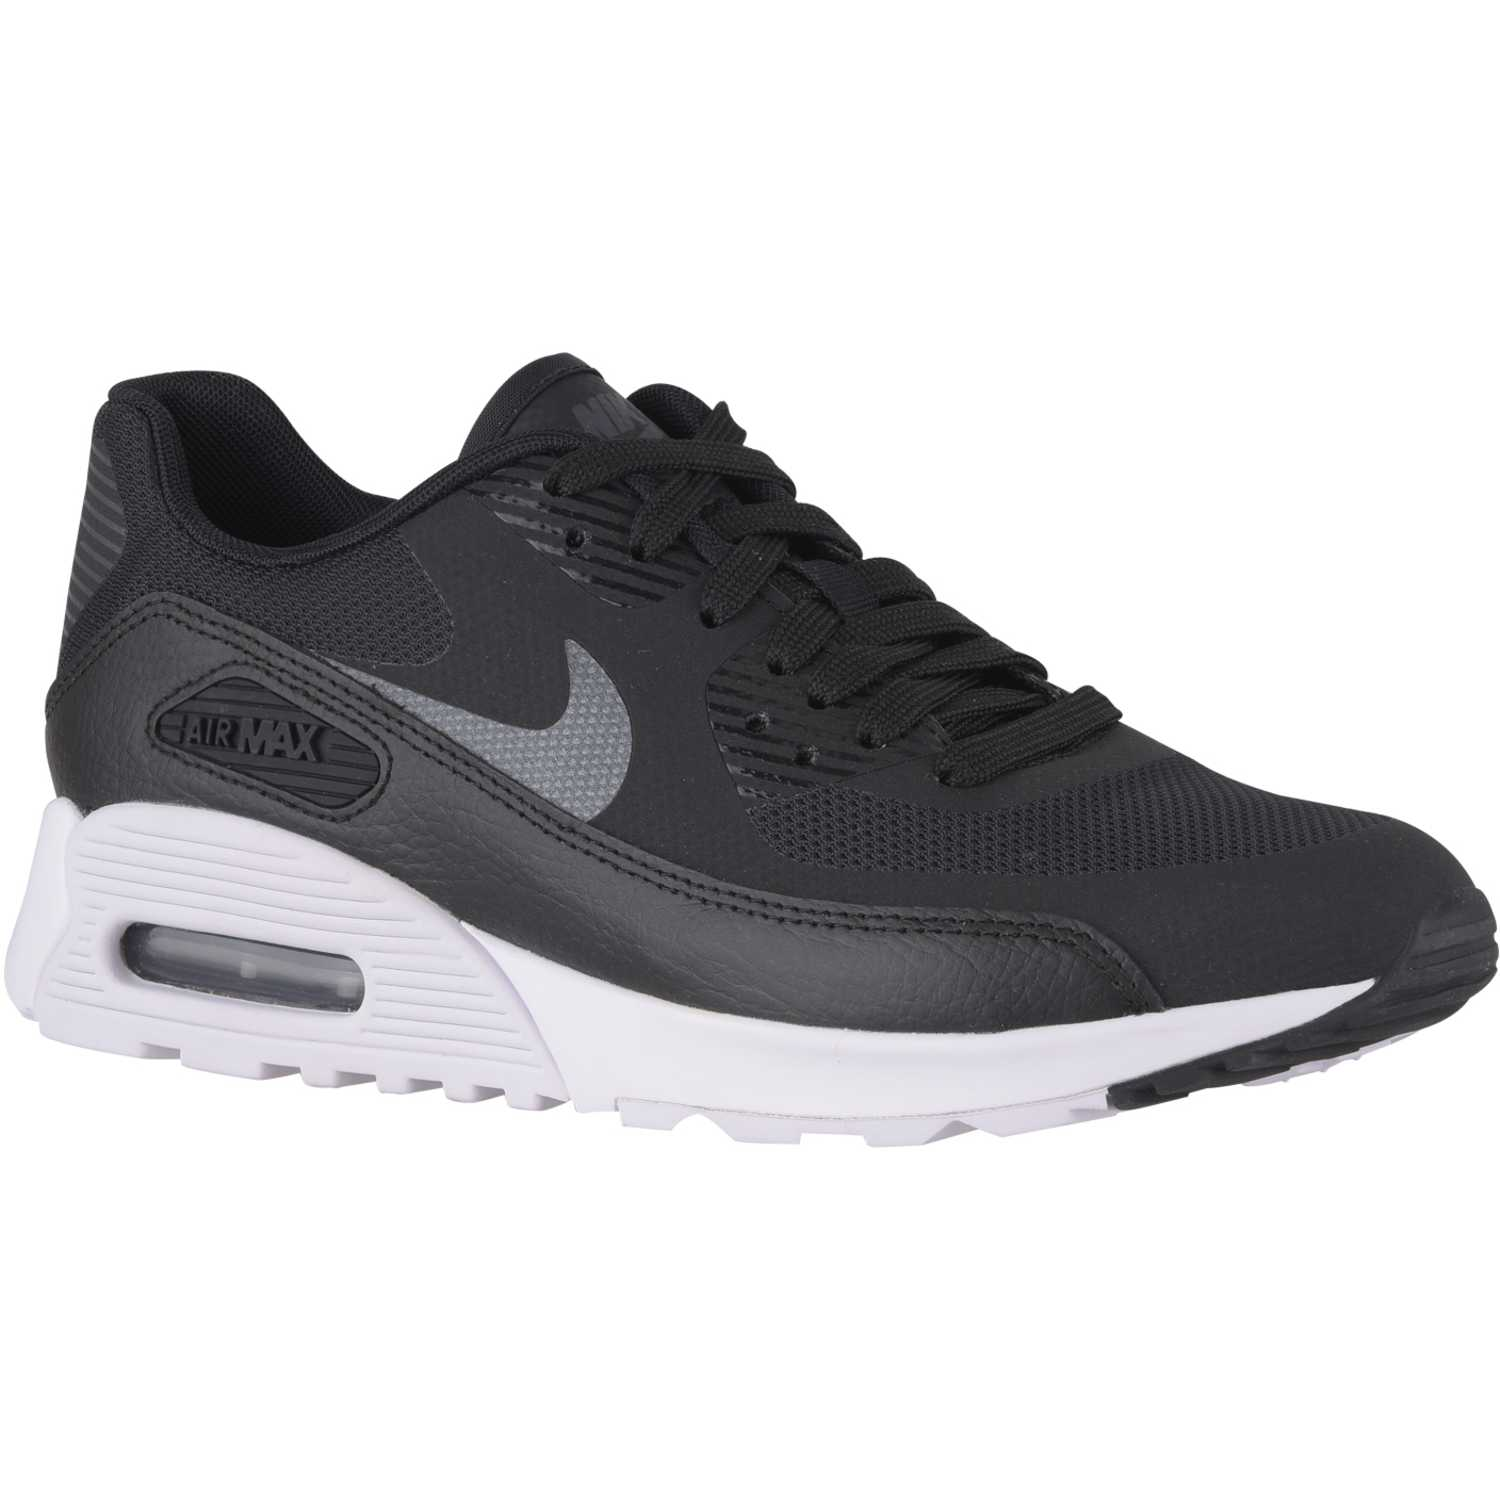 coupon code for nike air max 90 mujer blanco verde 0a618 06abb